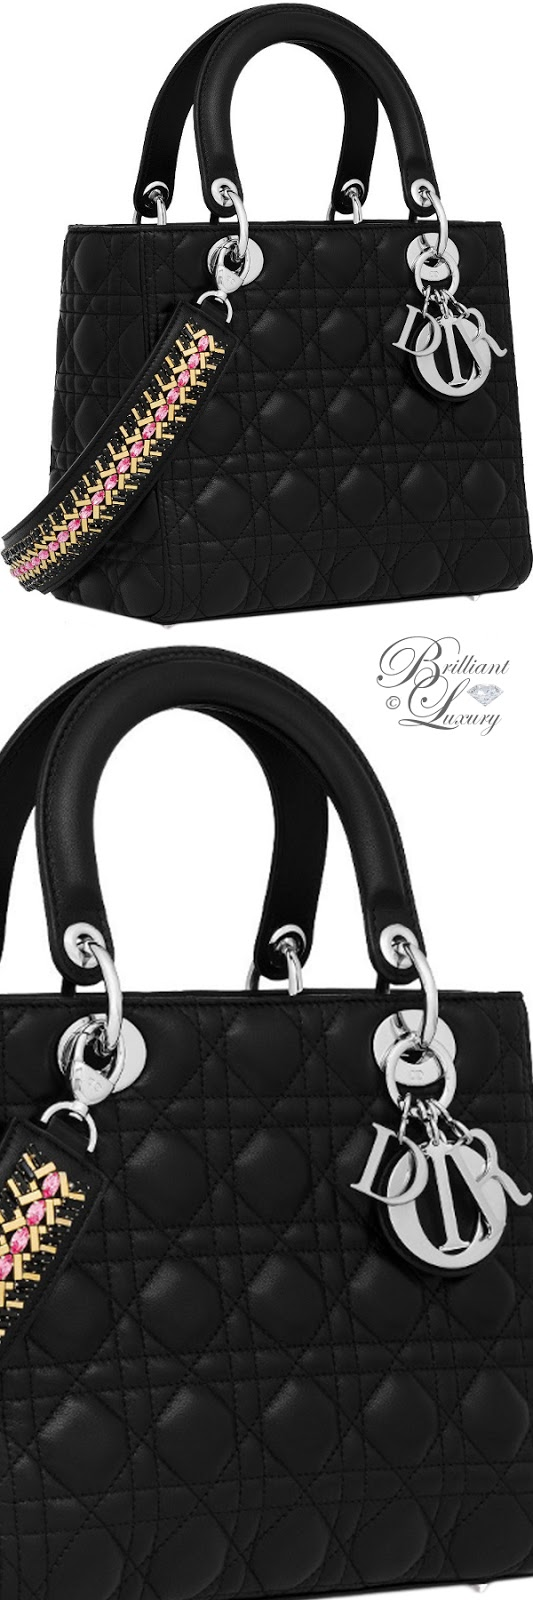 Brilliant Luxury ♦ Black lambskin Lady Dior bag with embroidered strap with crystals